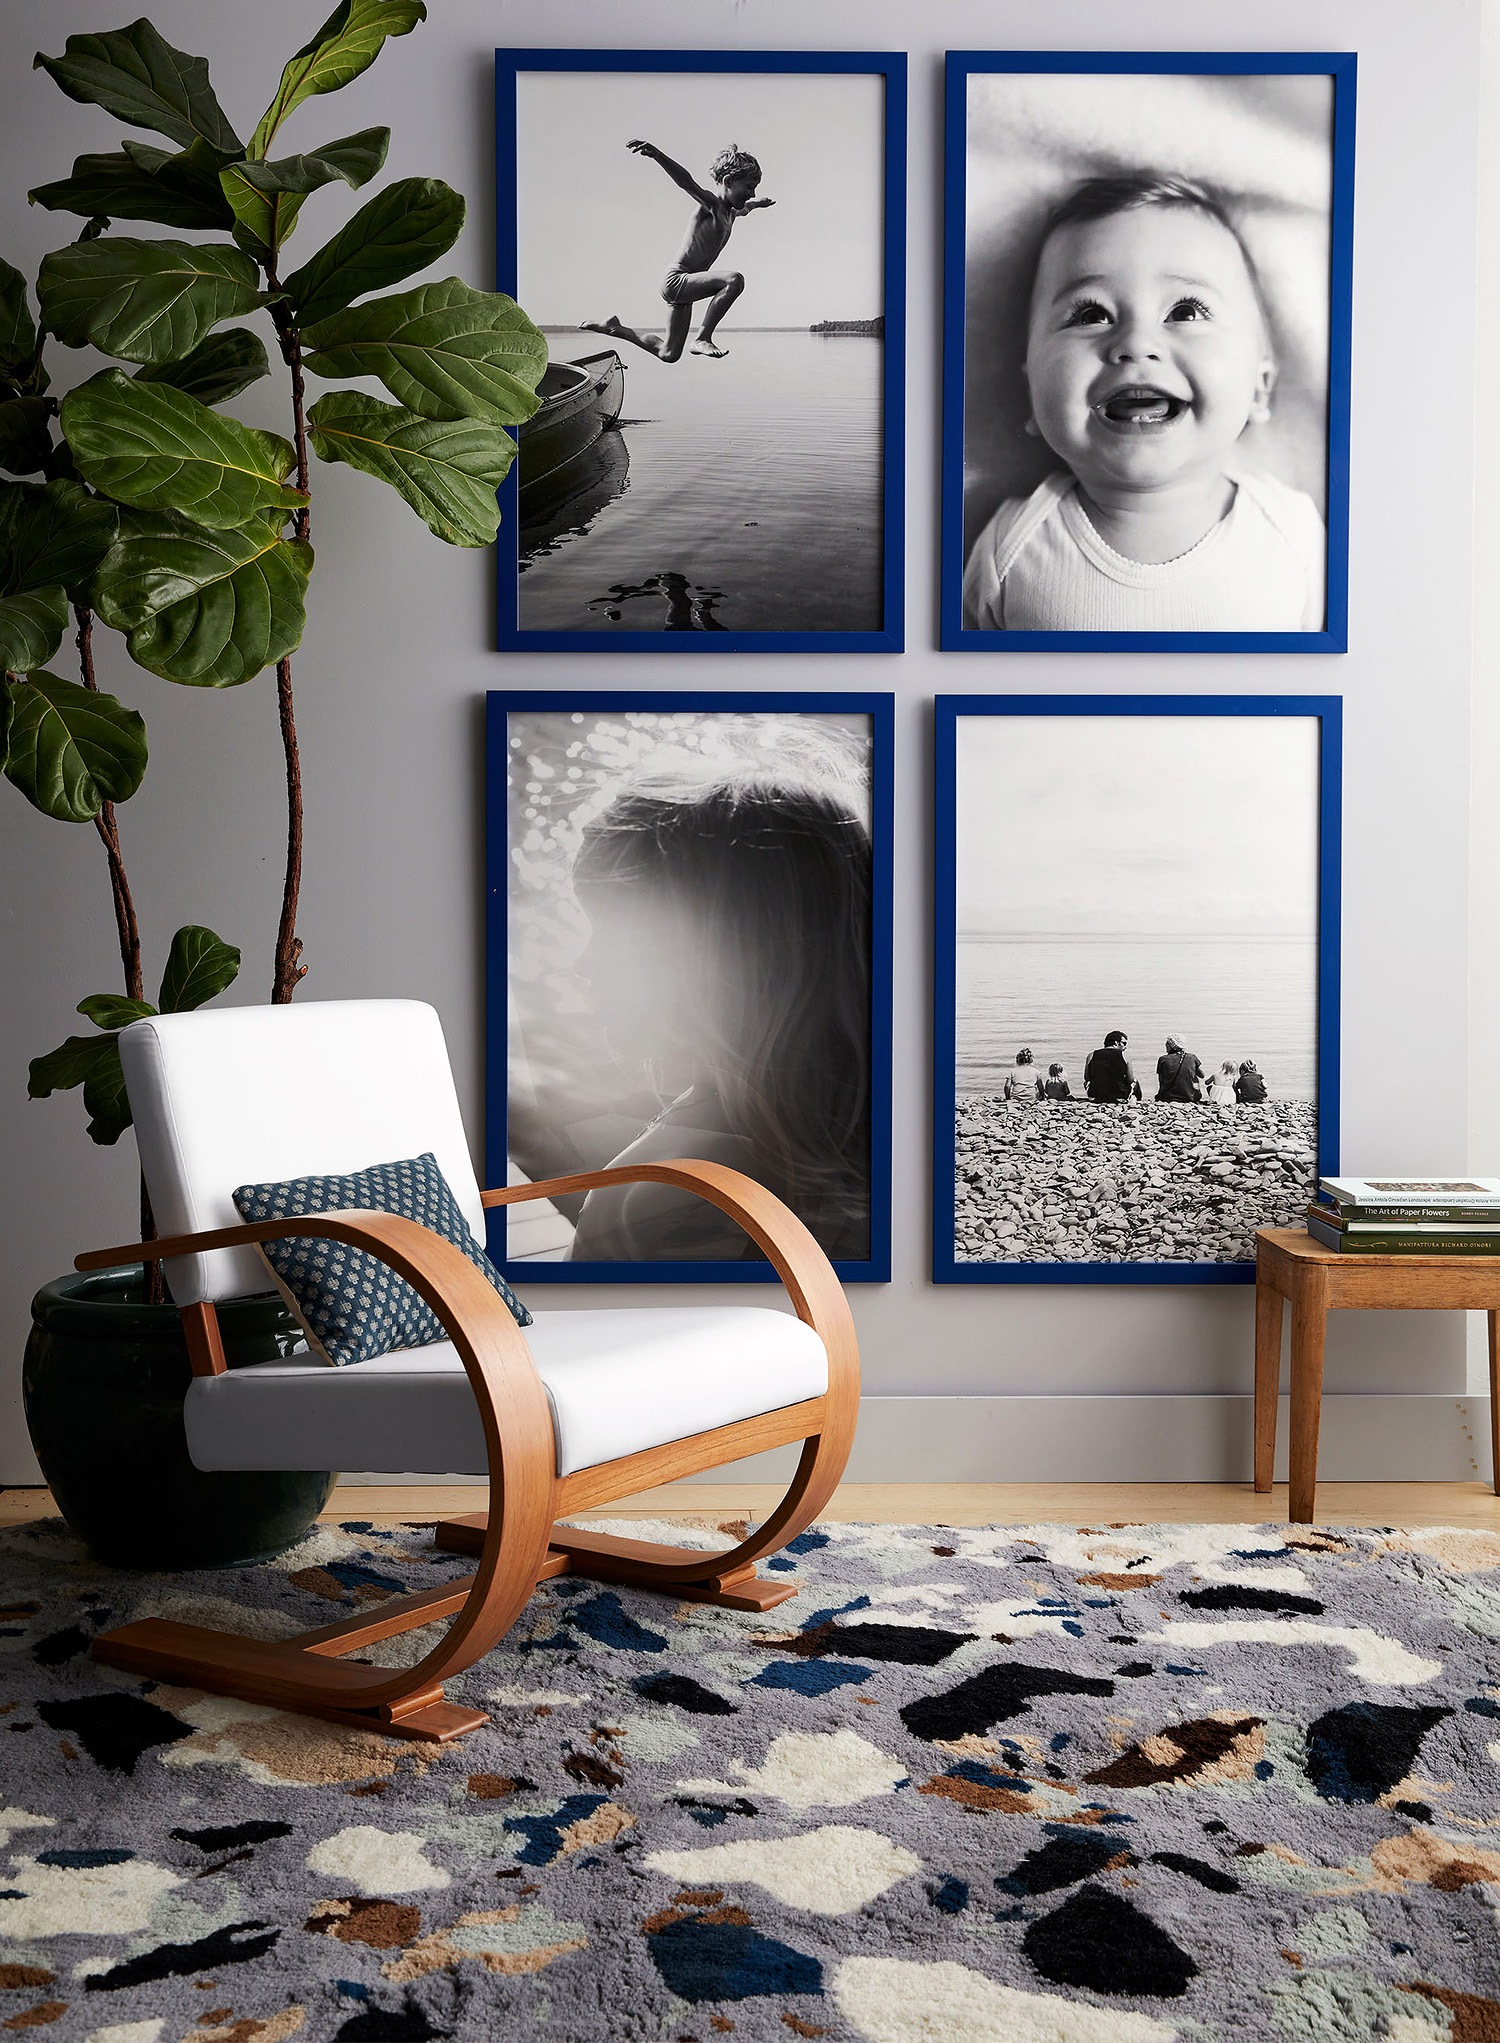 Three Easy Ways to Decorate Your Home with Your Smartphone Photos